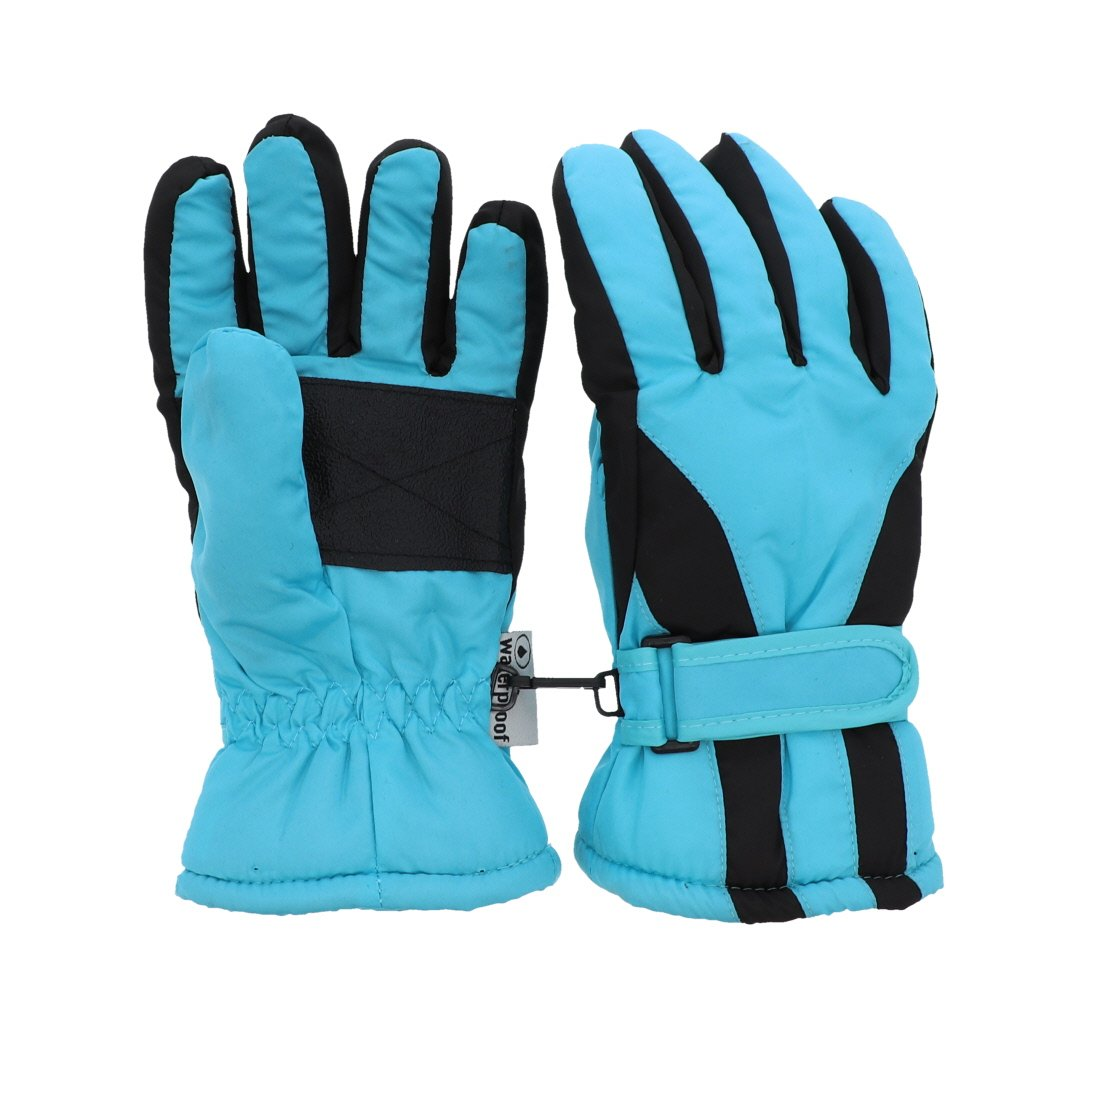 Waterproof Slant Design Ski Gloves for Youth - Red MTGL0053RD